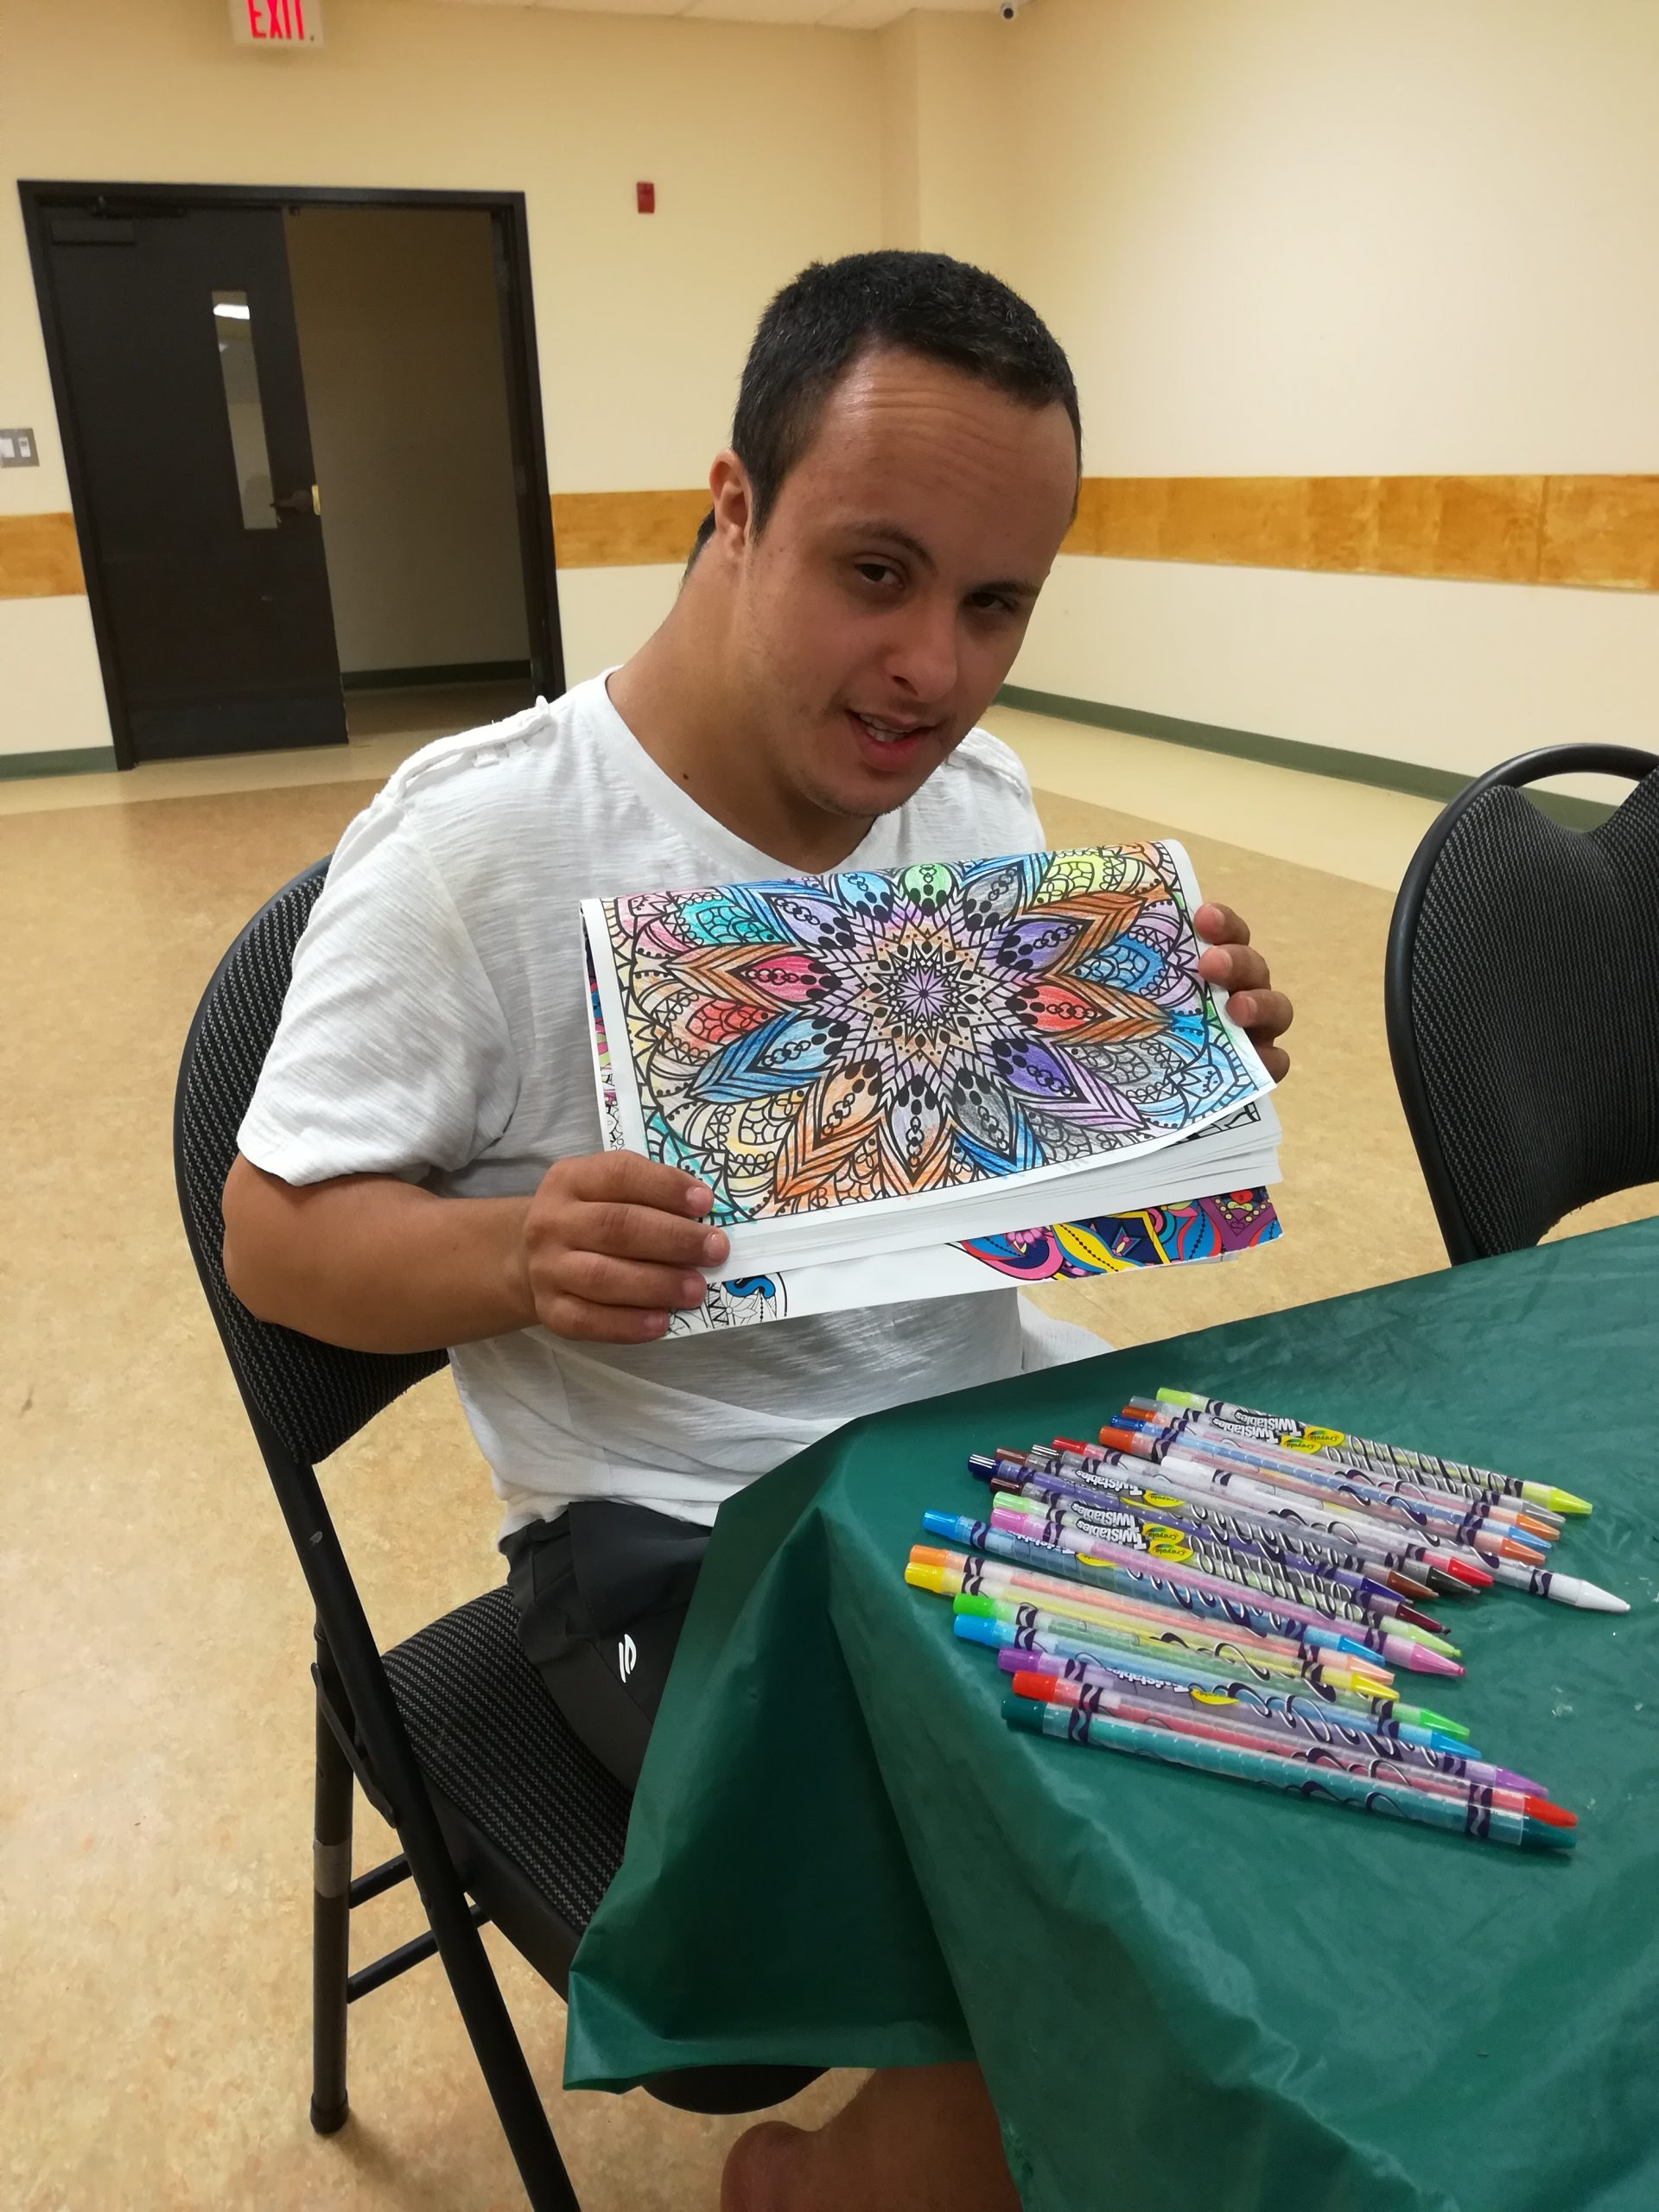 Male participant holding a coloring book showing his work of the mandala he colored.